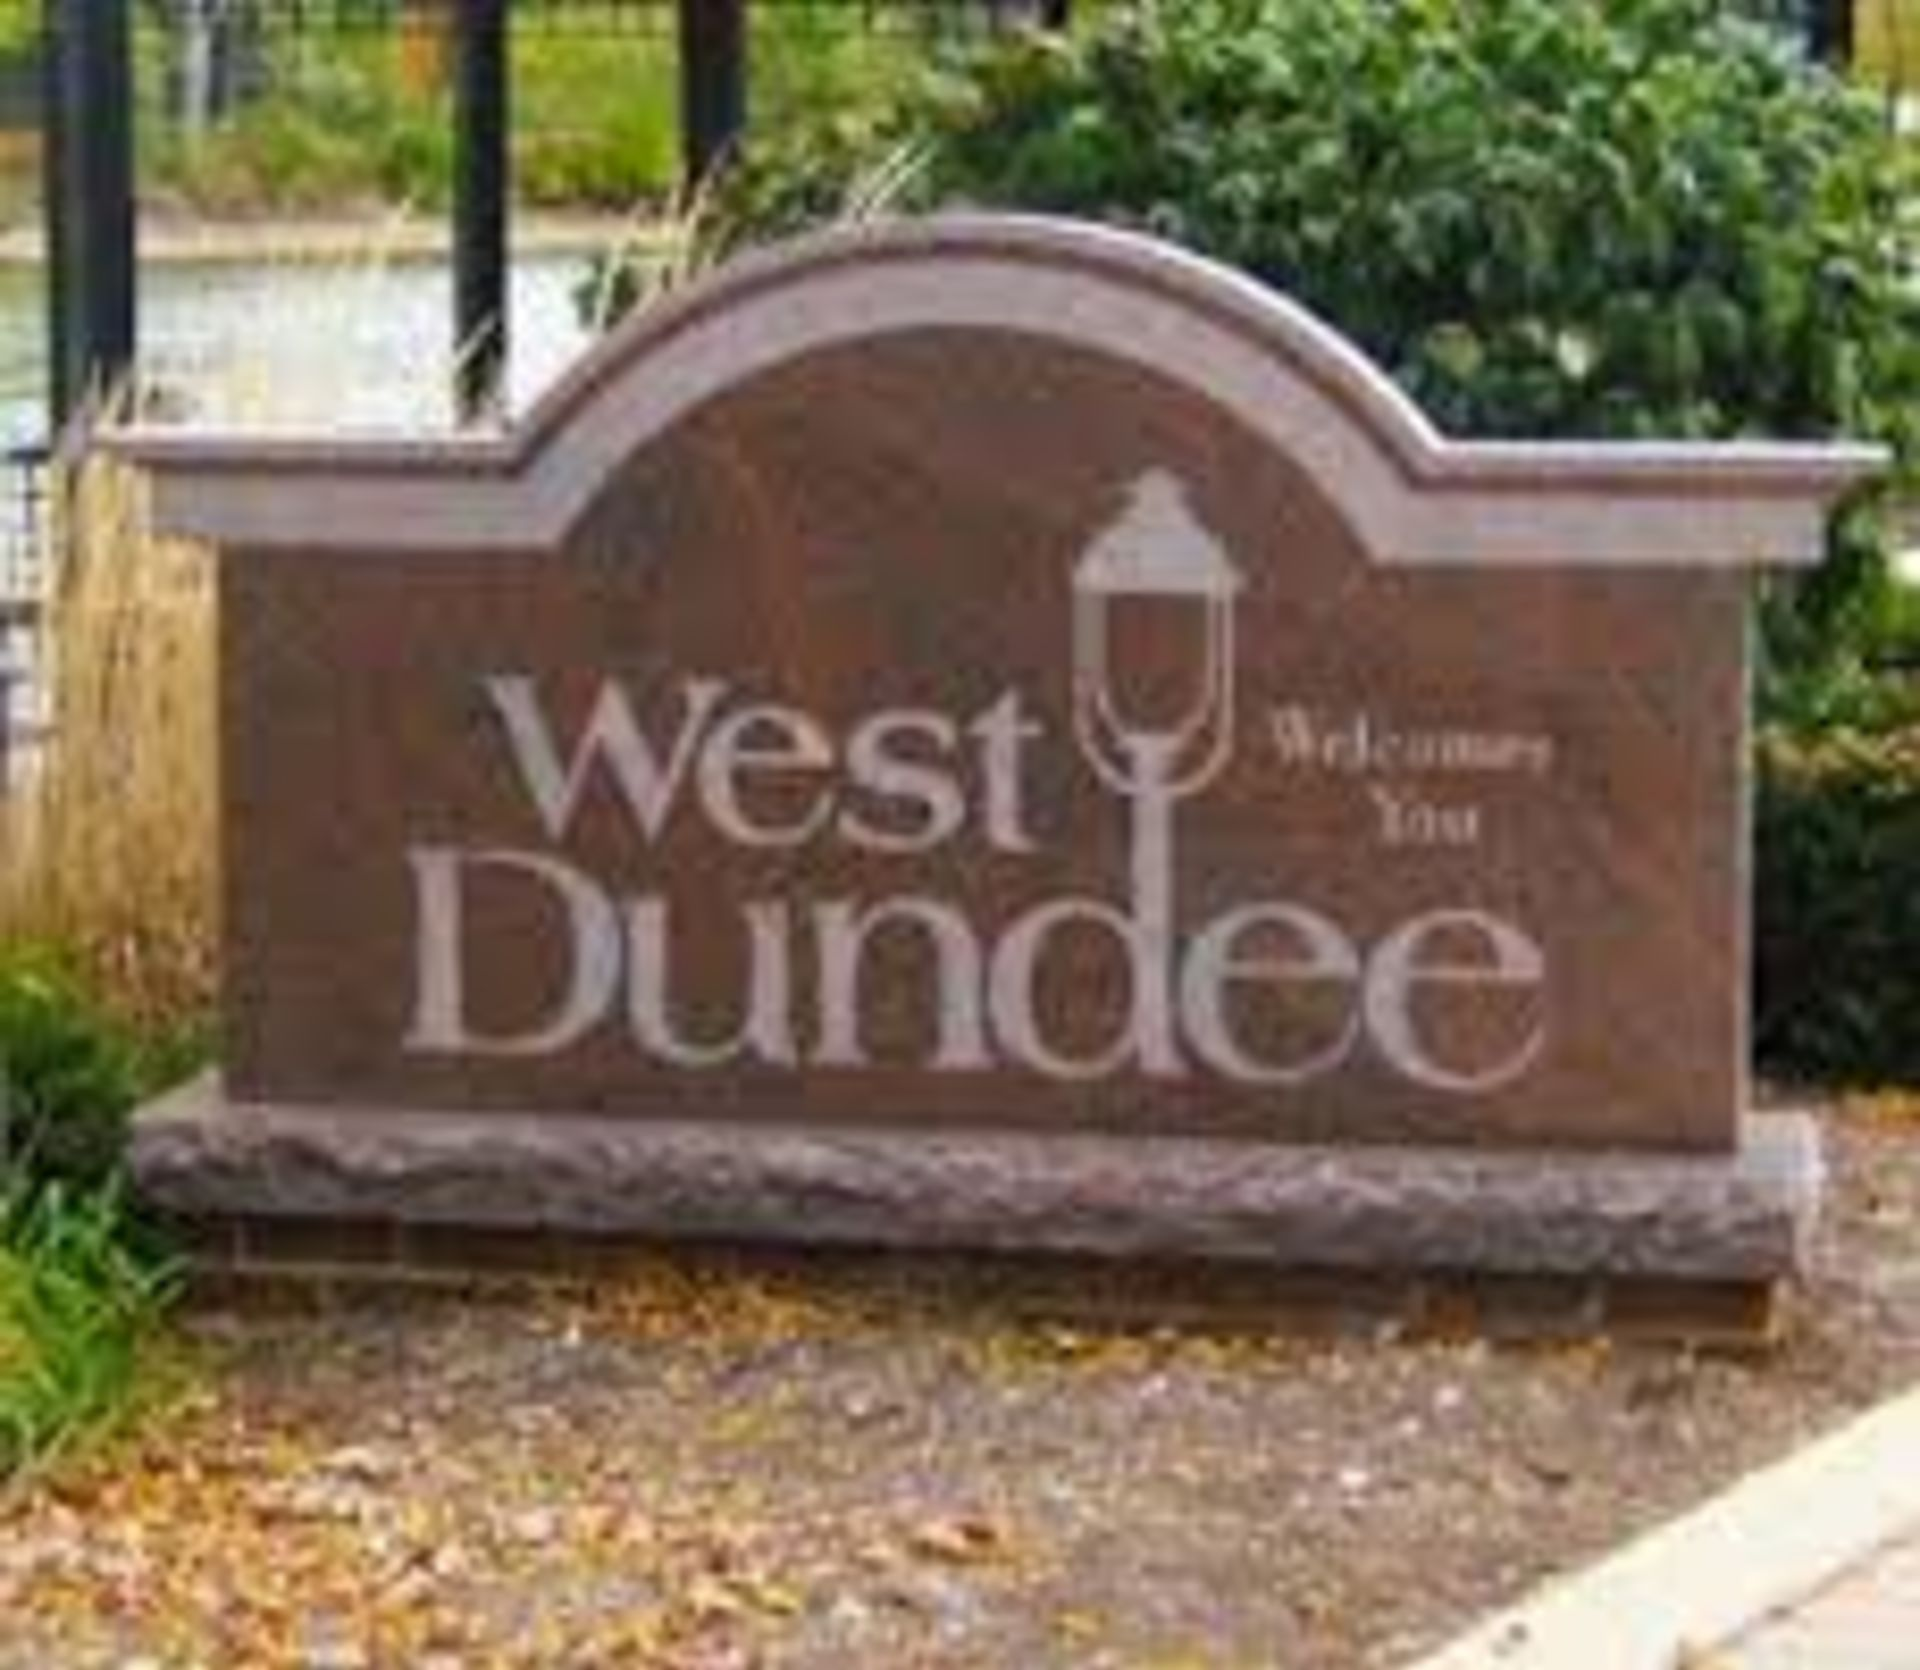 West Dundee